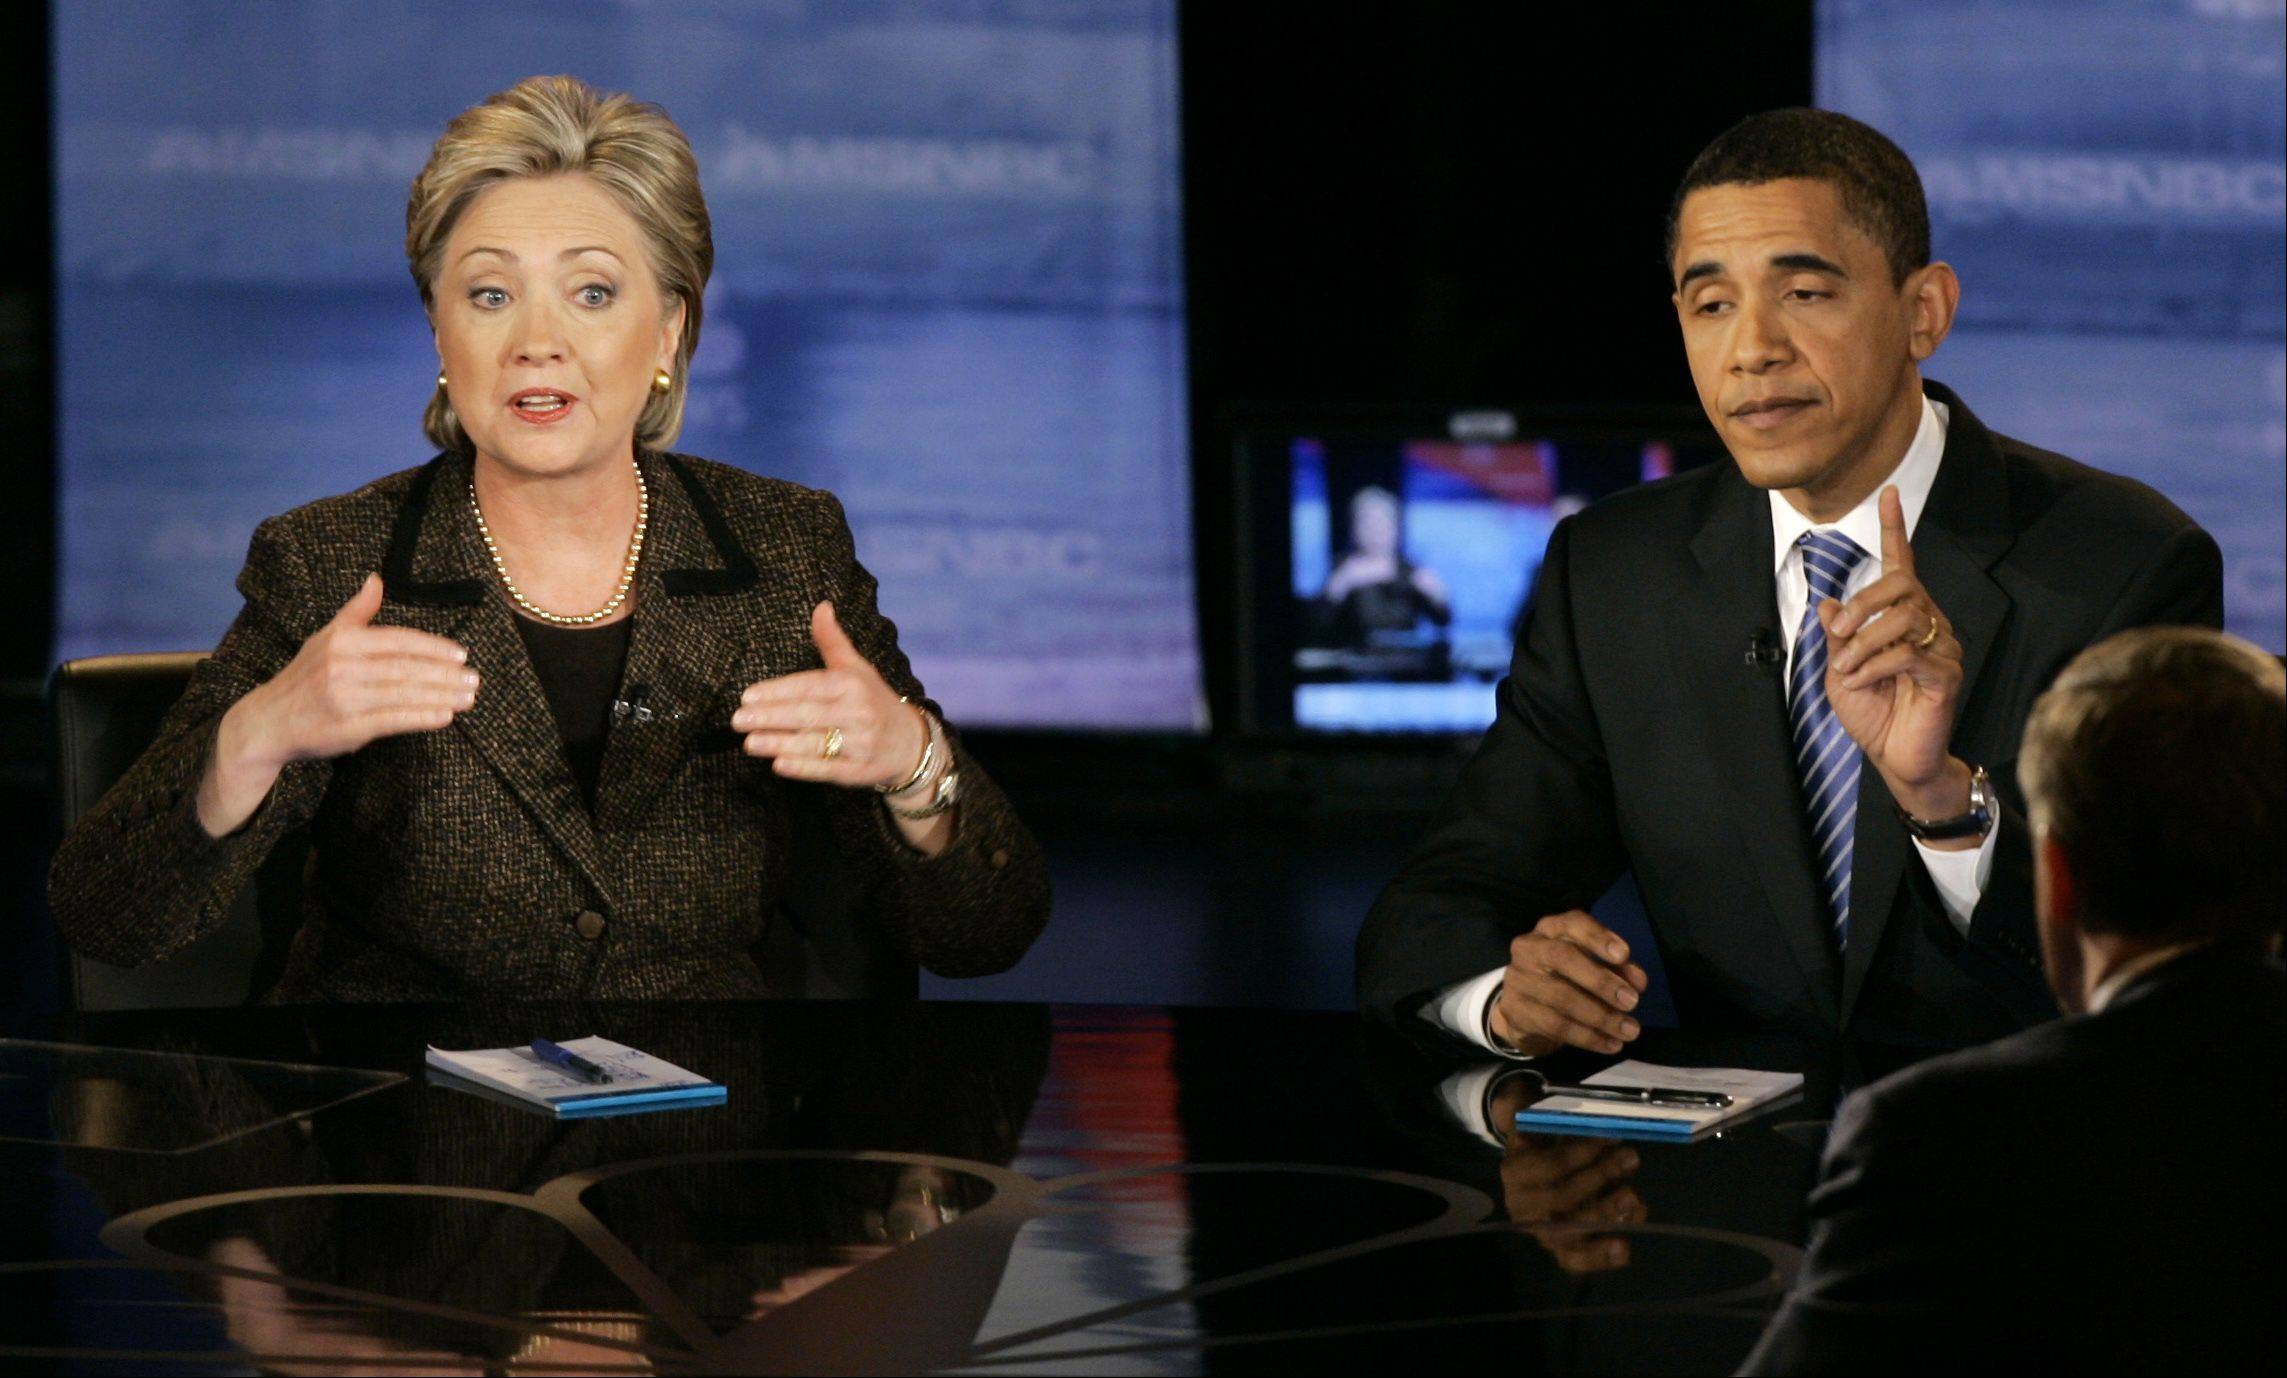 Three years ago, Hillary Rodham Clinton and President Barack Obama were battling it out for the Democratic presidential nomination. This year, there's a strong united front with Clinton's former fundraisers generating money for the Obama campaign.